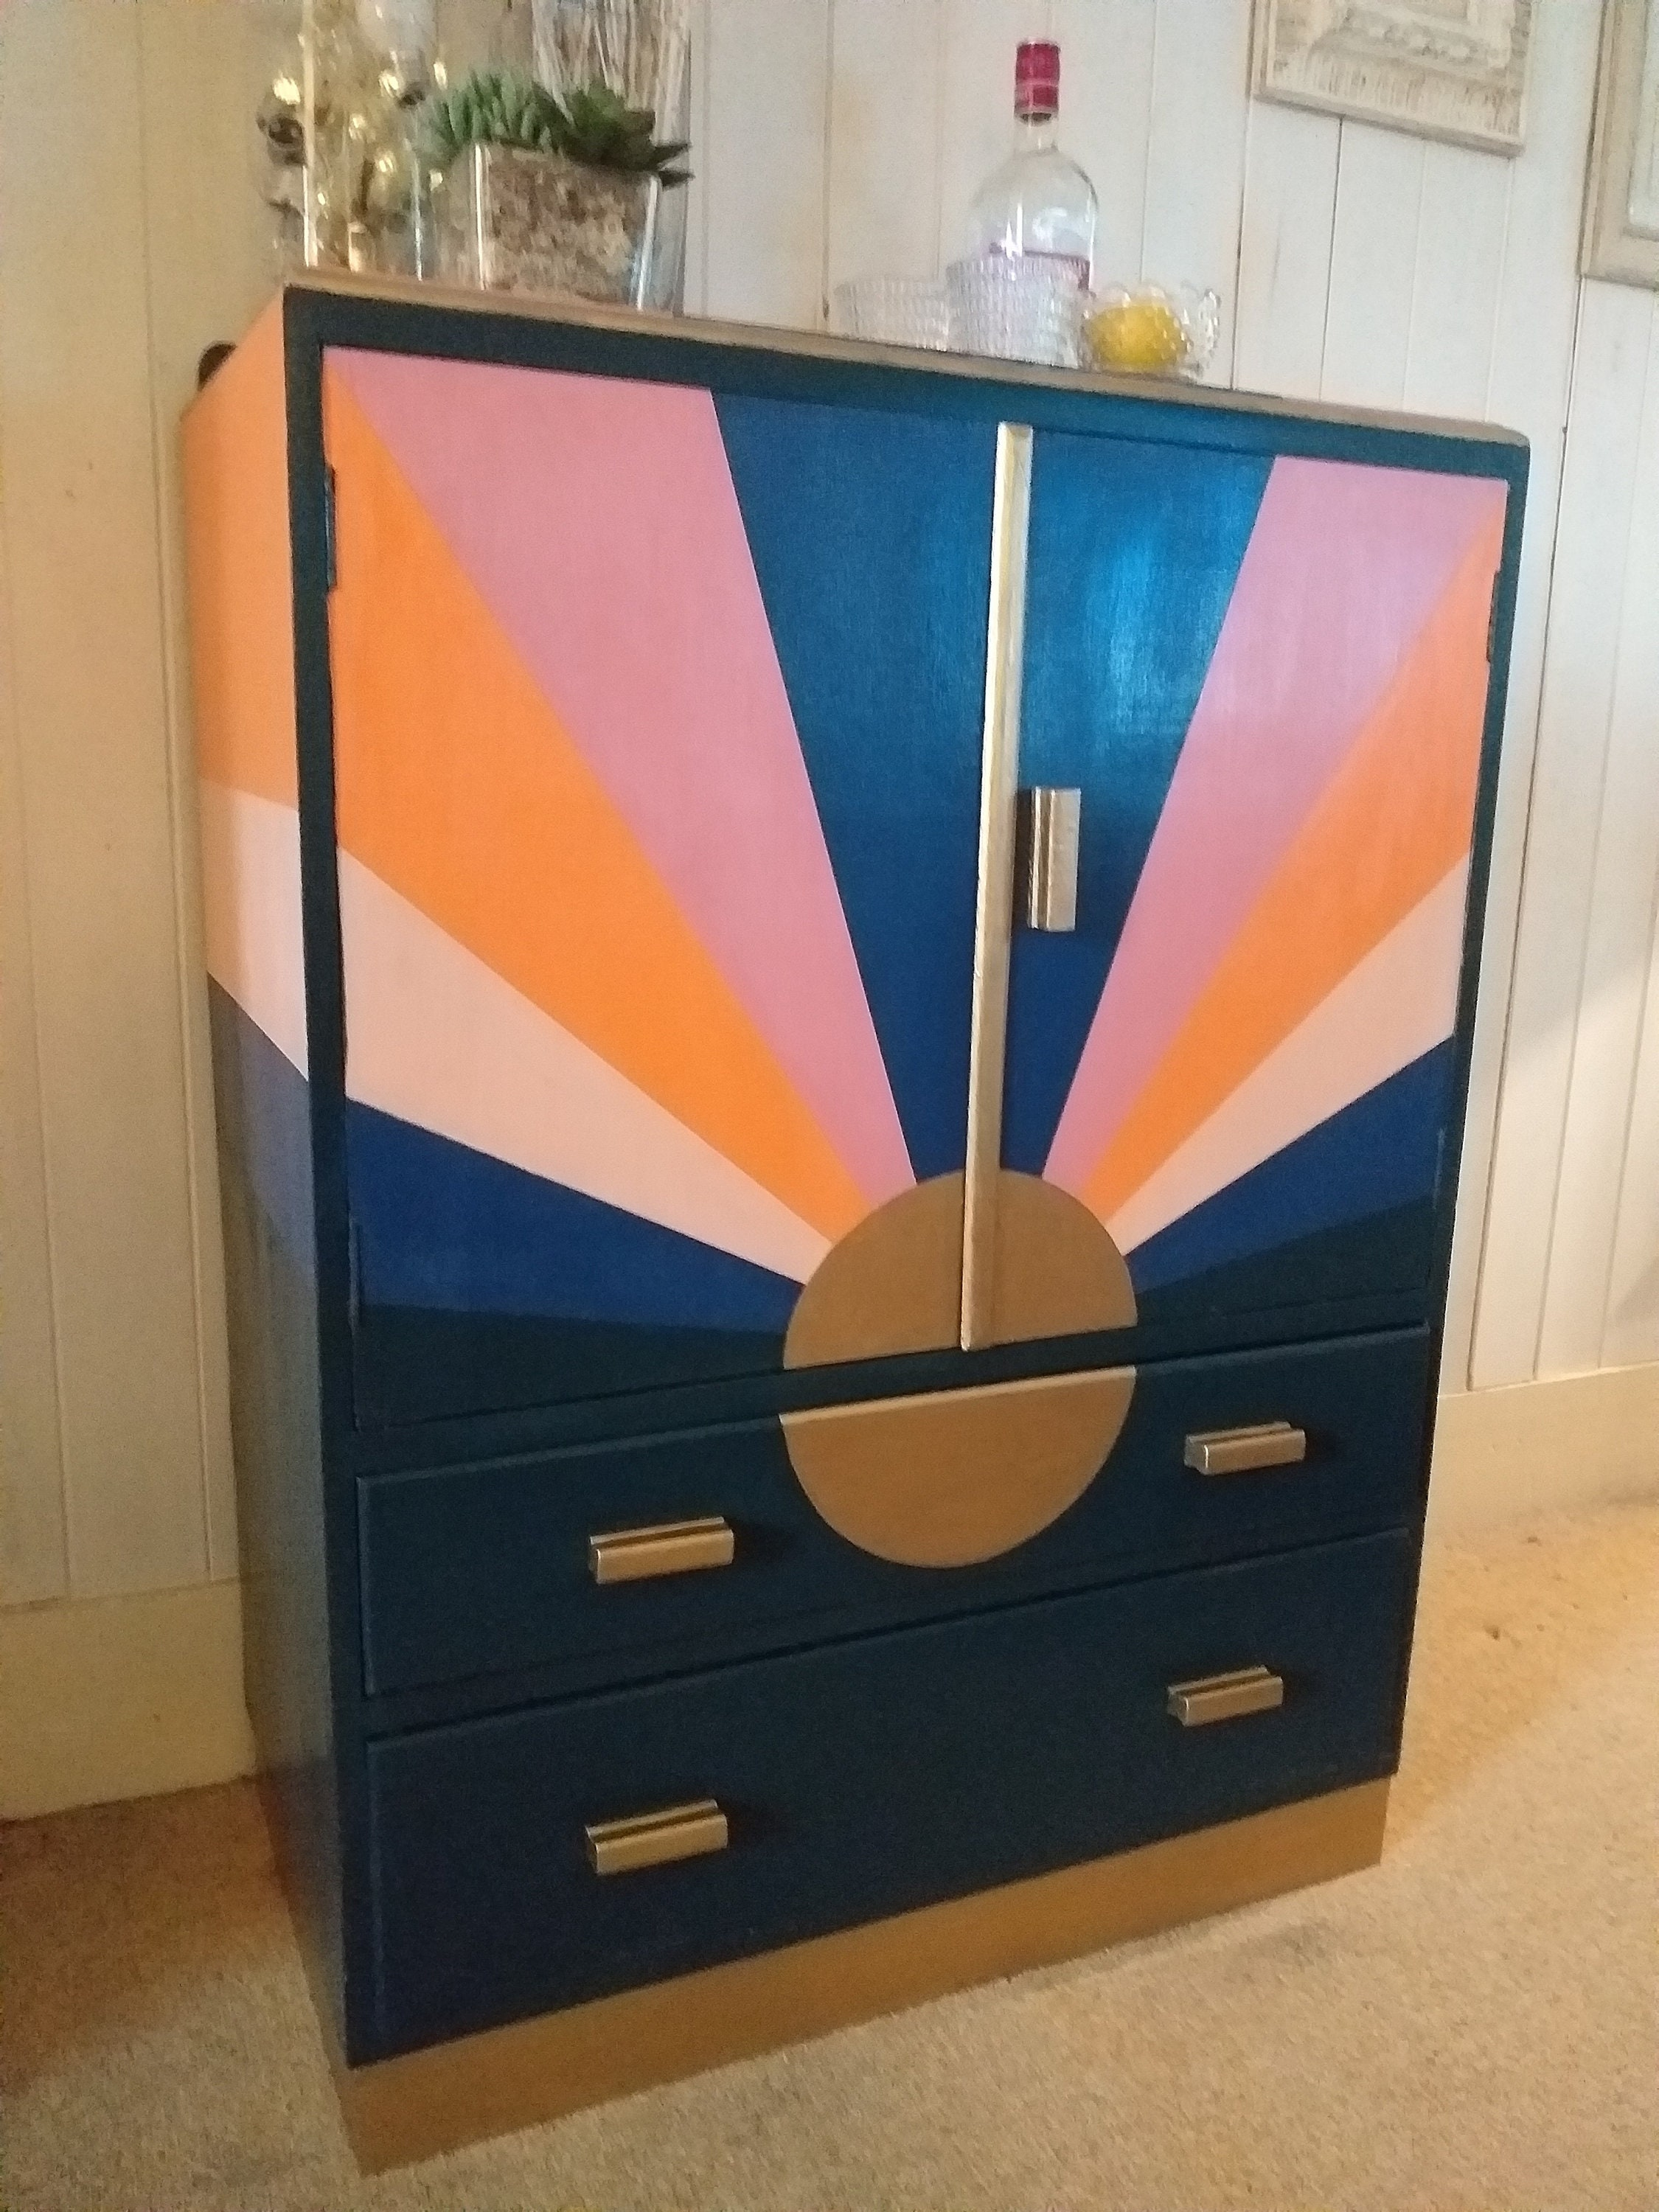 SOLD*SOLD*SOLD Drinks Cabinet for sale